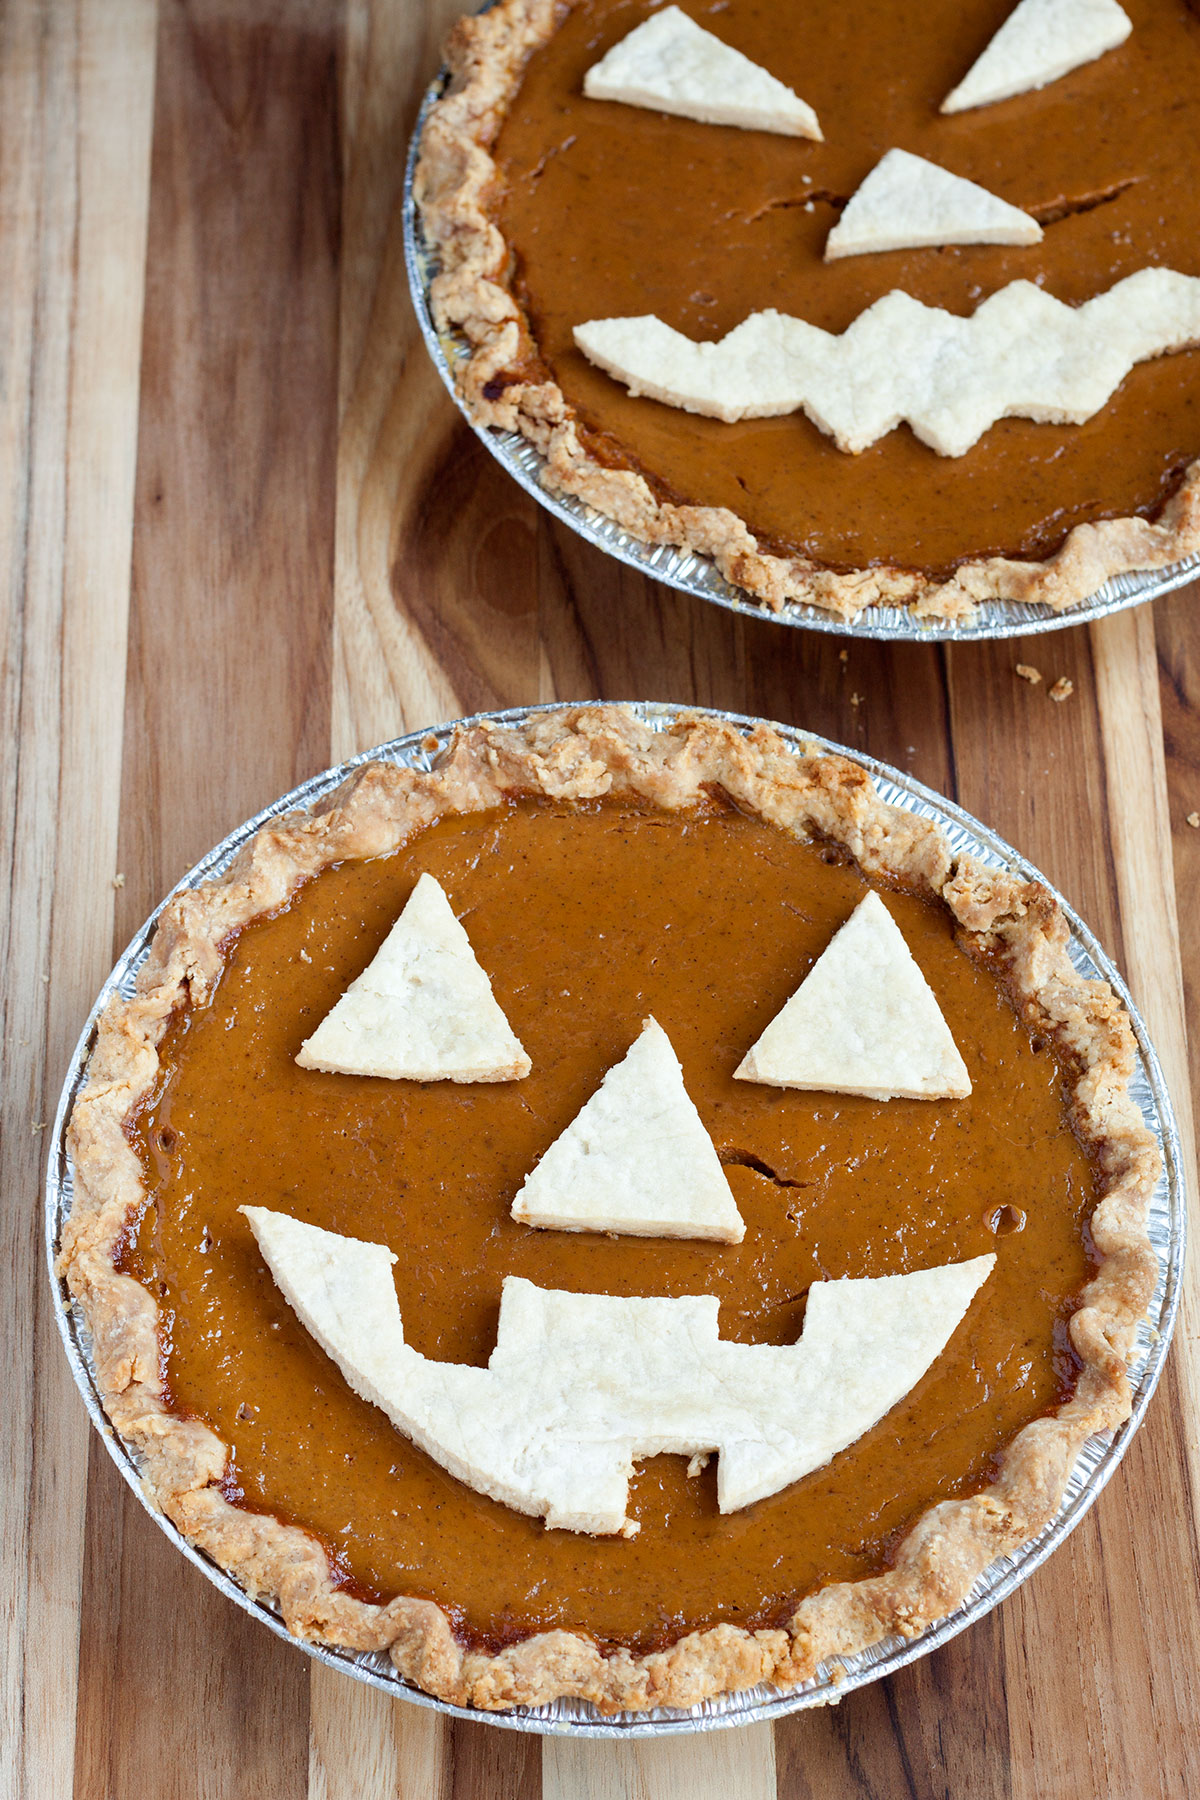 Jack O Lantern Pumpkin Vs Pie Pumpkin